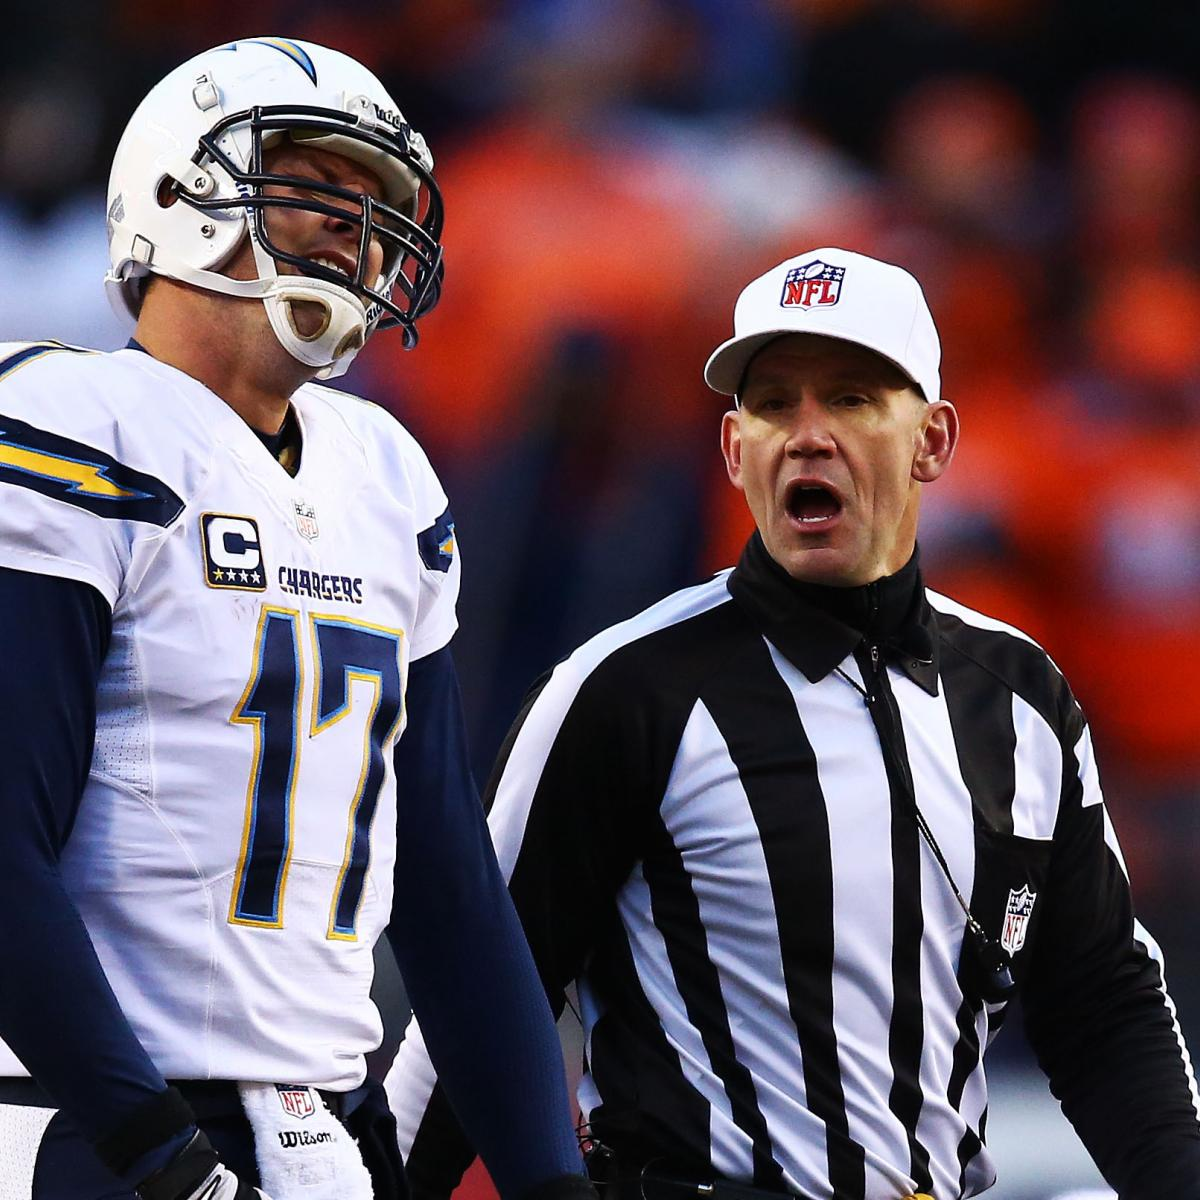 San Diego Chargers Broadcast: 7 Biggest Problems Facing The NFL In 2014-15